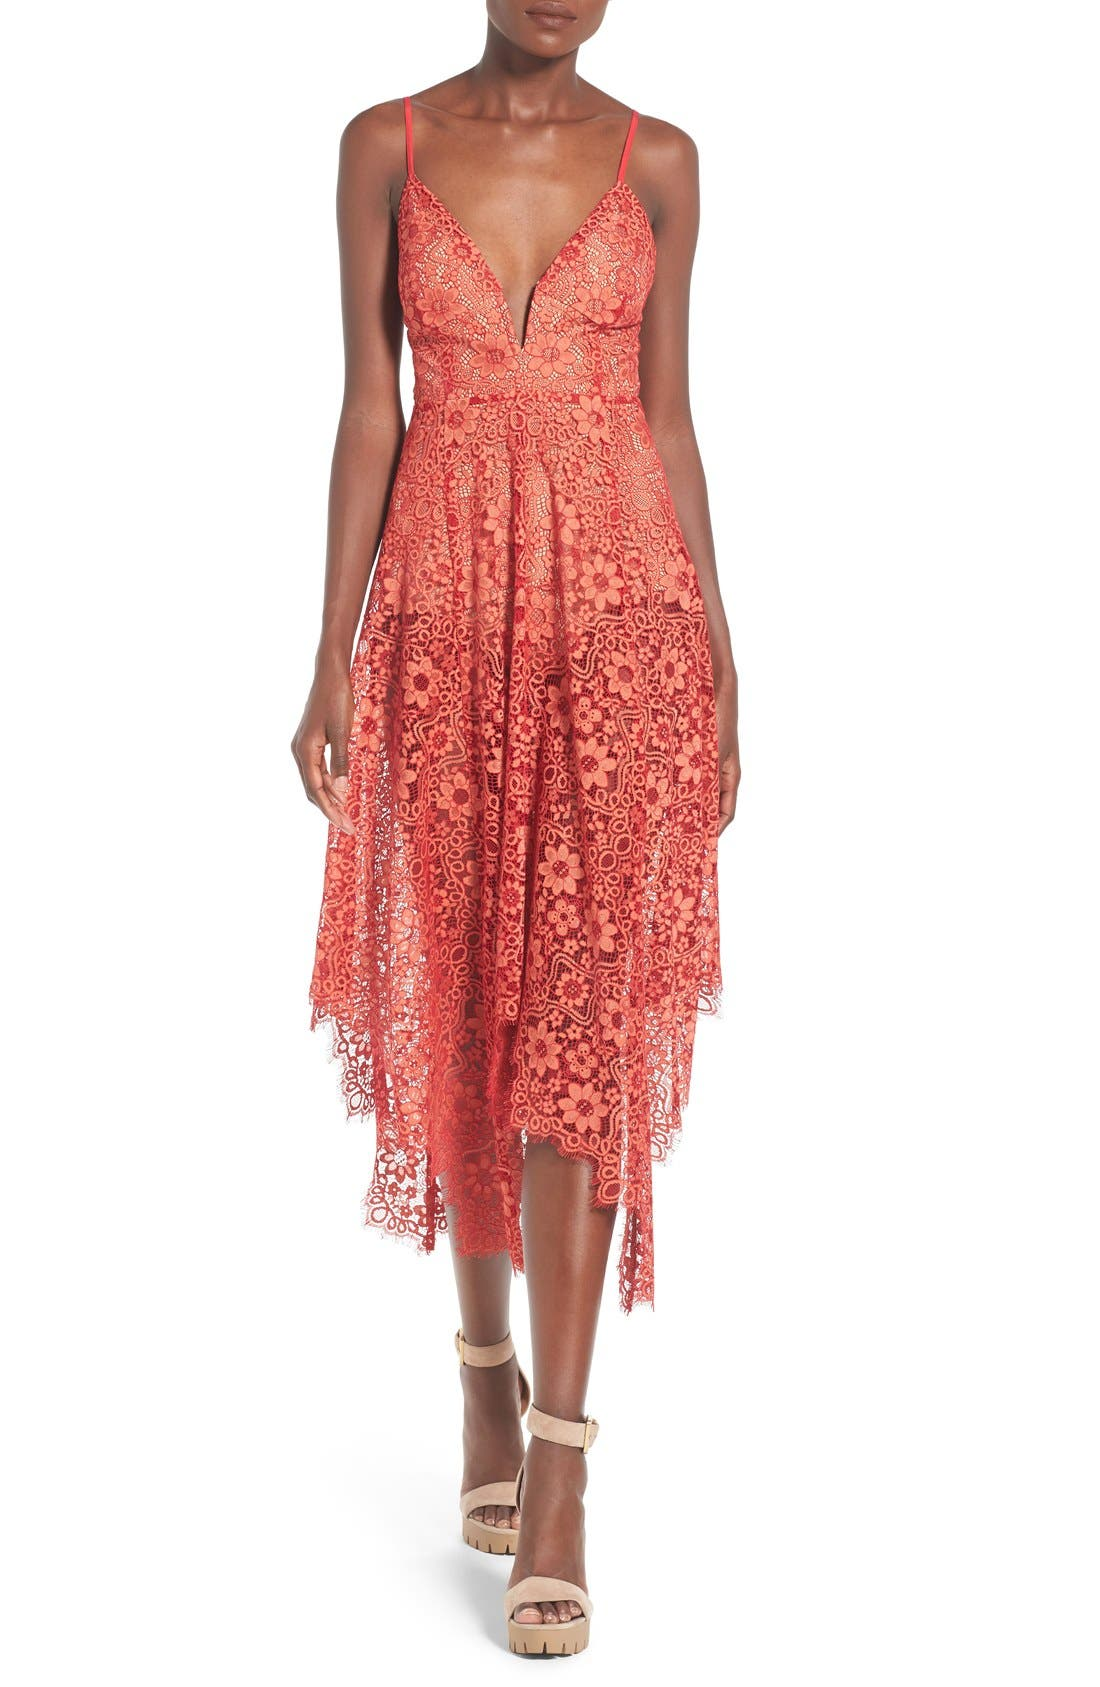 Alternate Image 1 Selected - For Love & Lemons 'Rosemary' Handkerchief Hem Lace Midi Dress